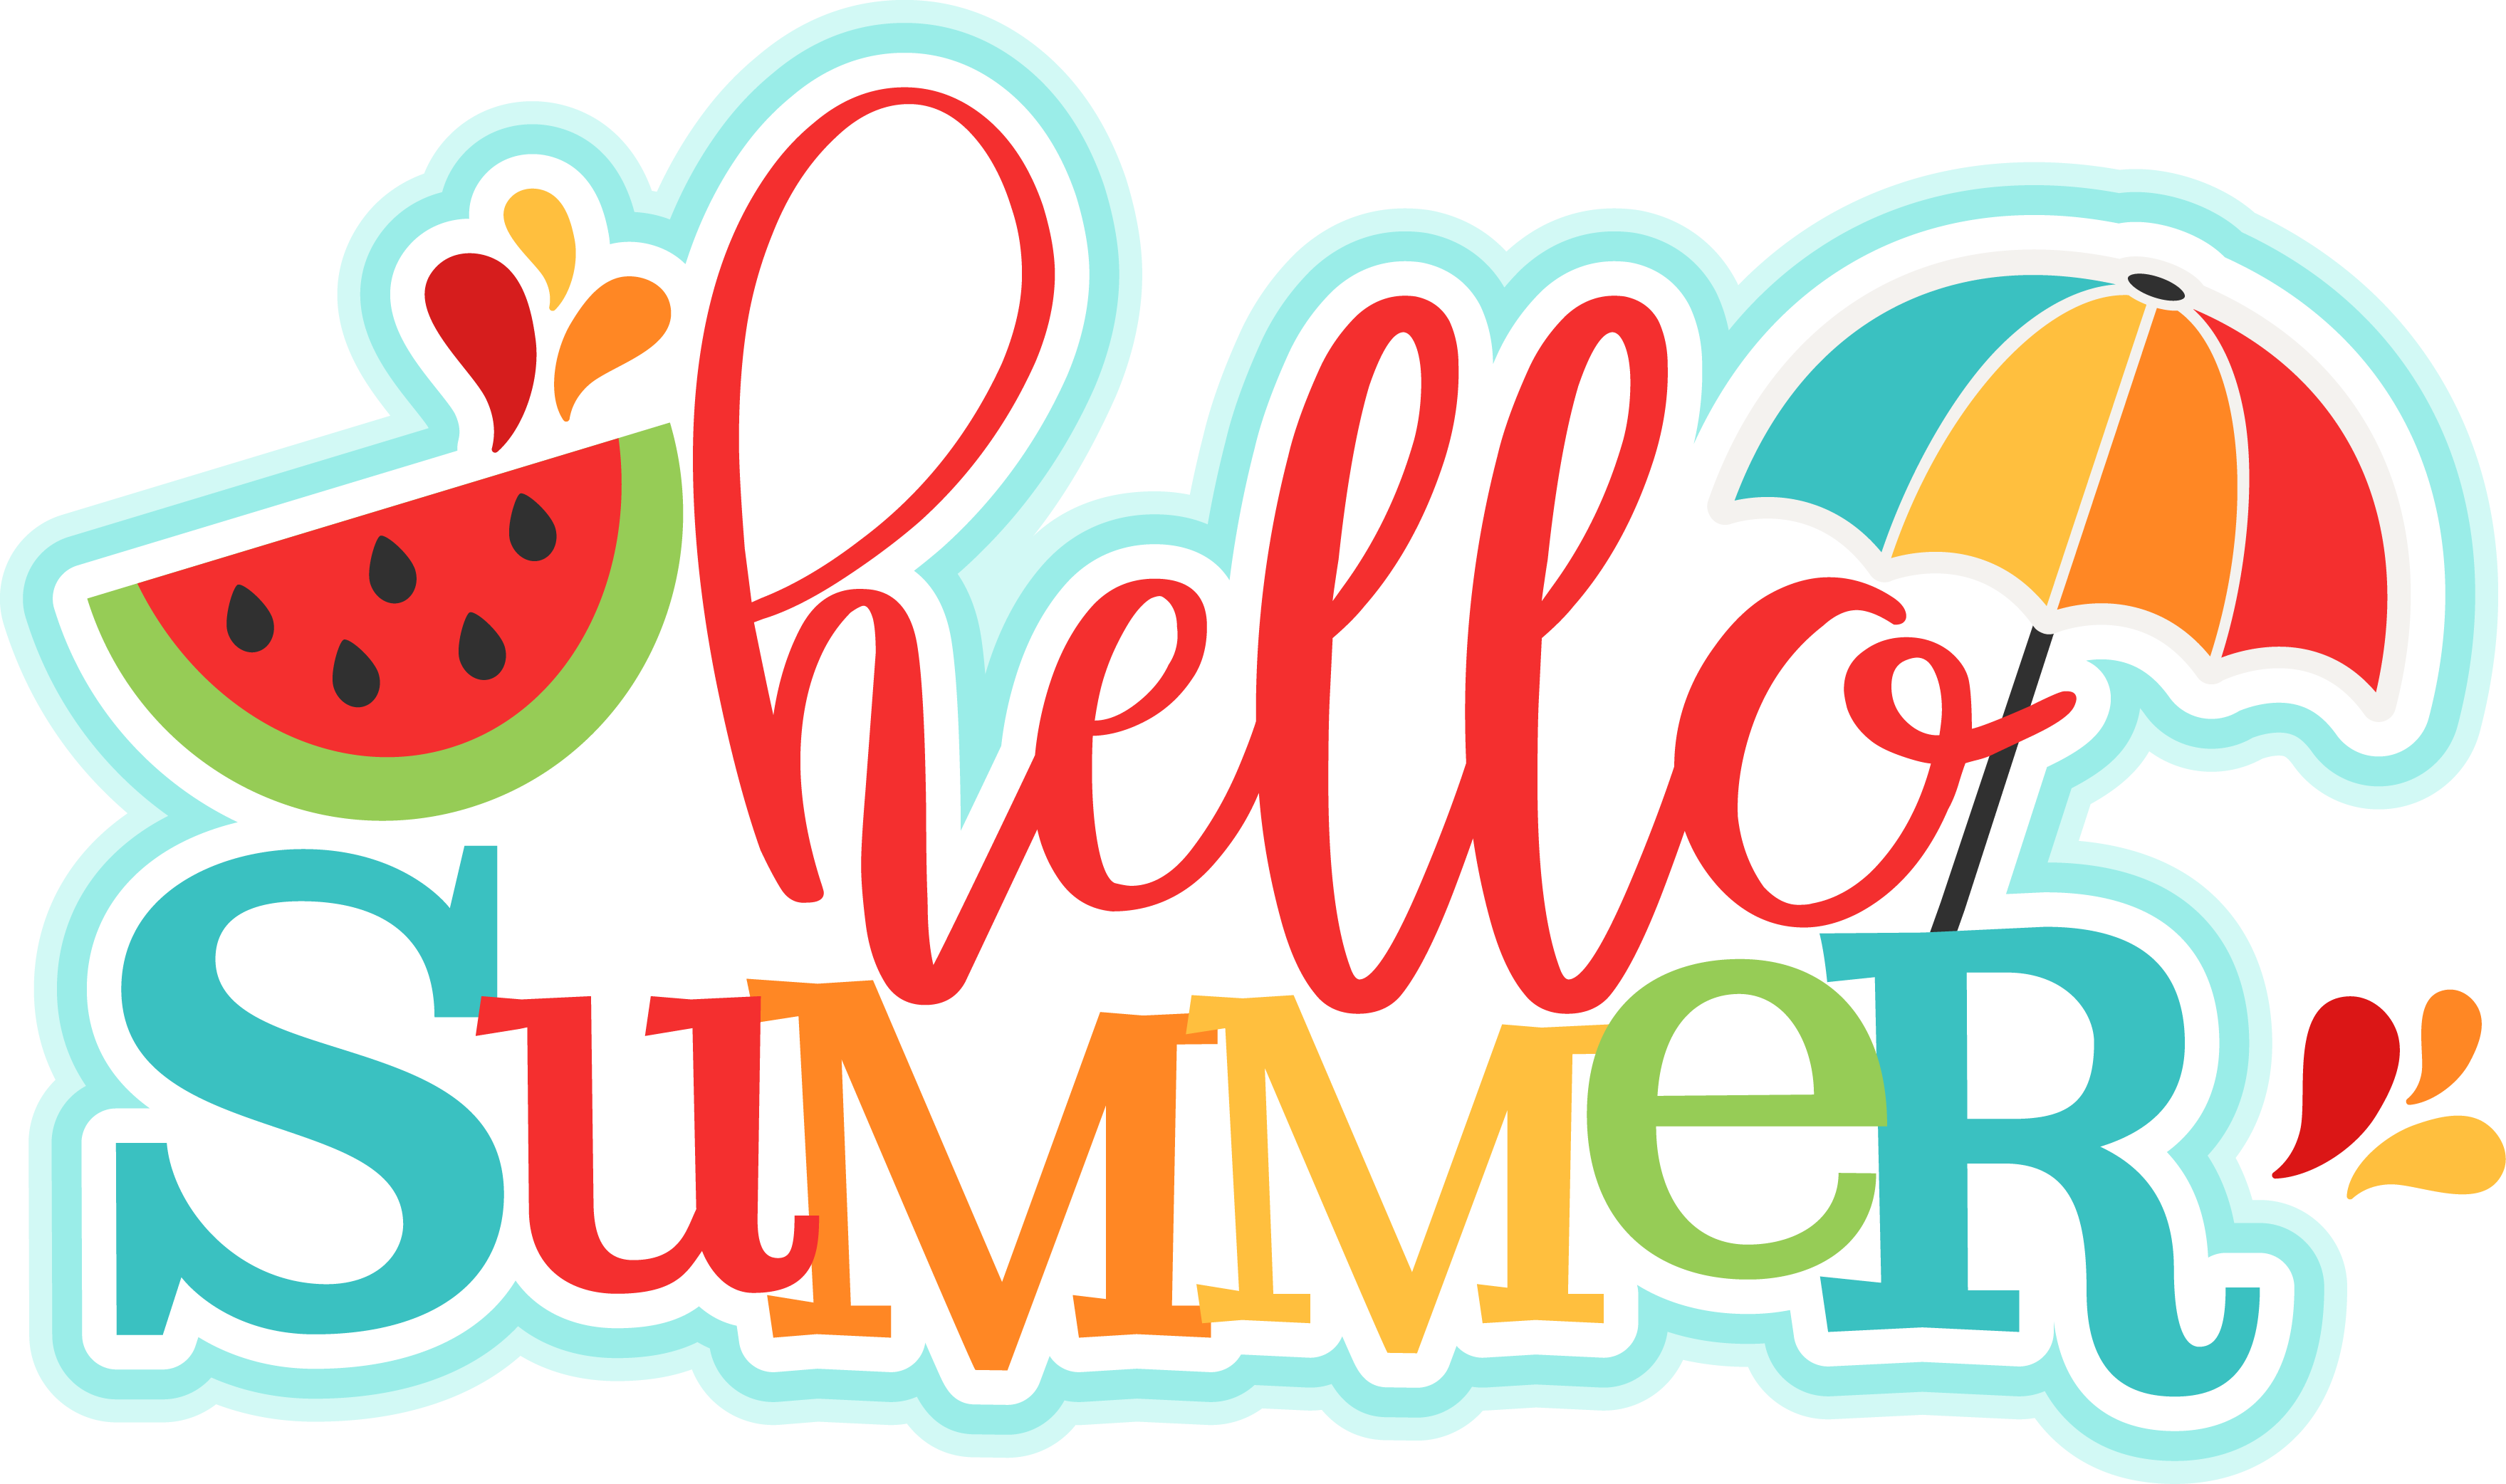 Pin by Benita Micelli on Scrapbooking Layouts & More | Summer clipart,  Silhouette design, Hello summer